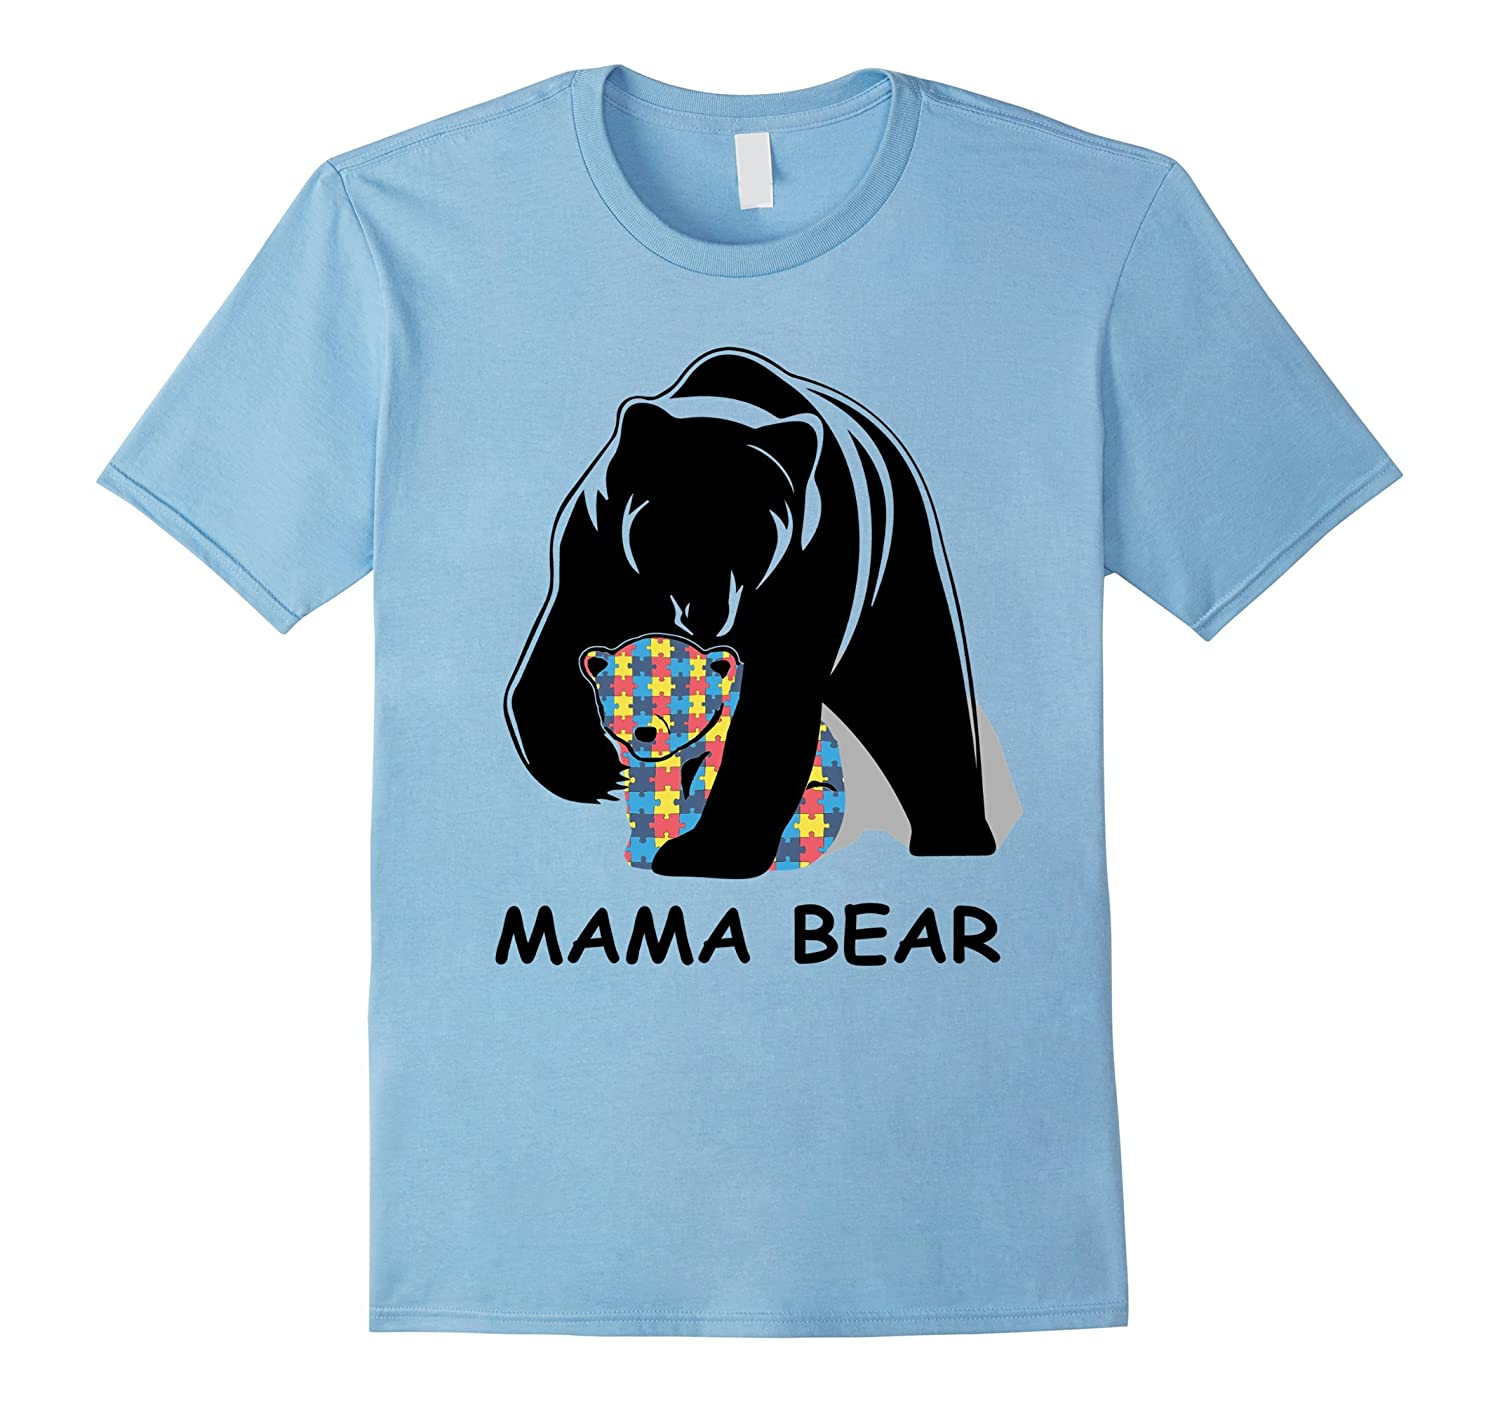 2017 Autism Awareness Mom - Mama Bear TShirt-CD